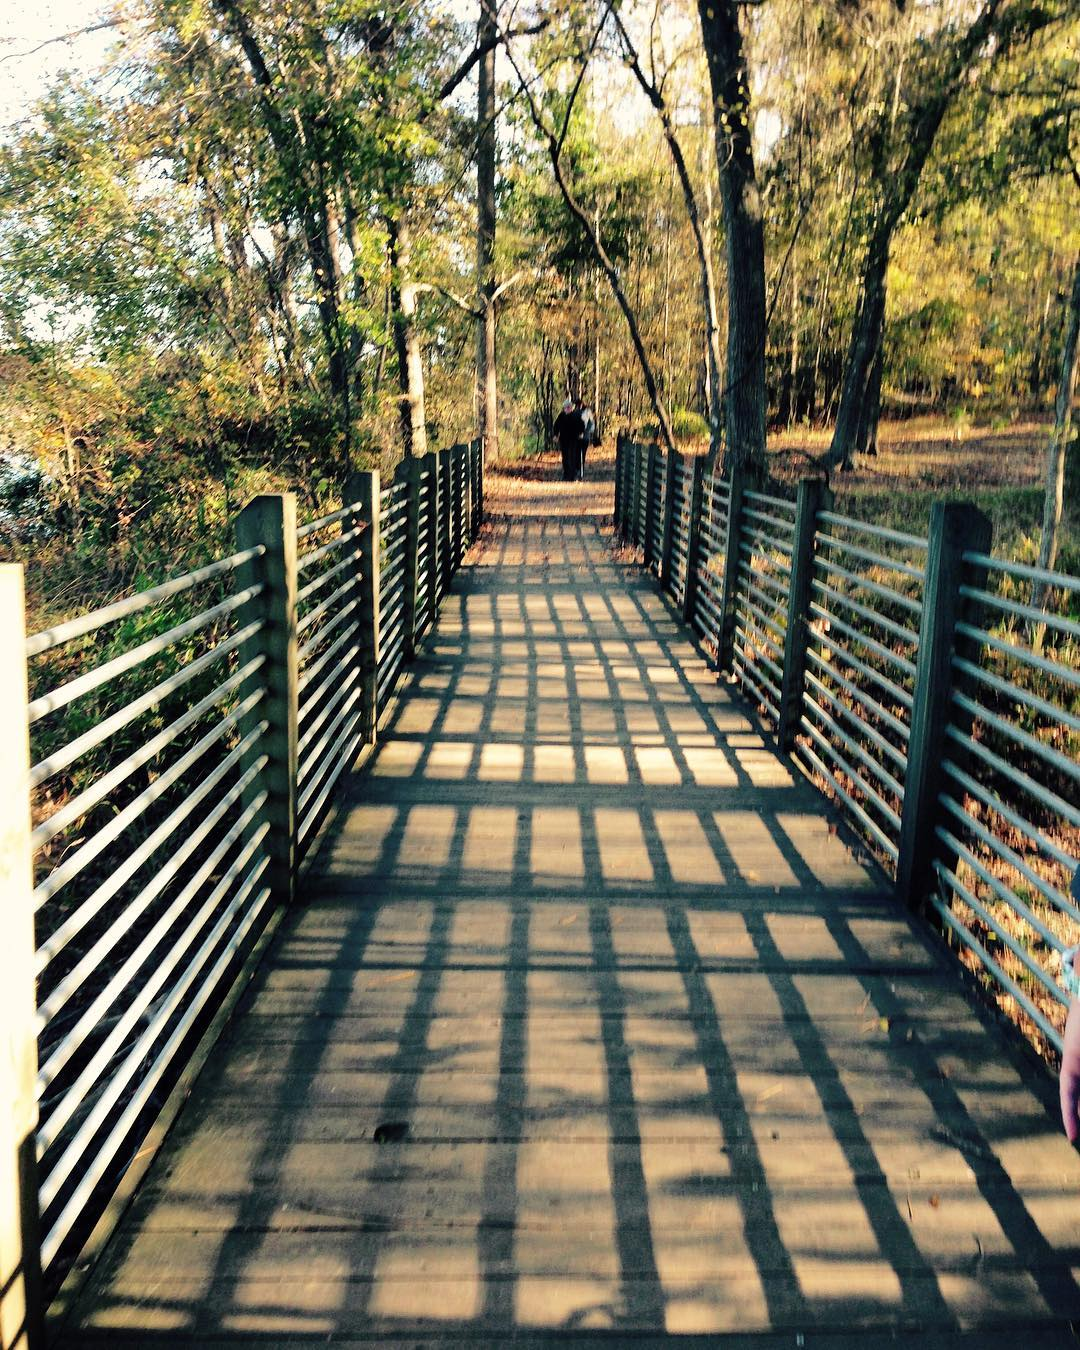 The Nature Trail is 0.6 miles in length along the shores of the Catawba River  Length: 0.6 miles  Type: Hiking Trail  Difficulty: Easy